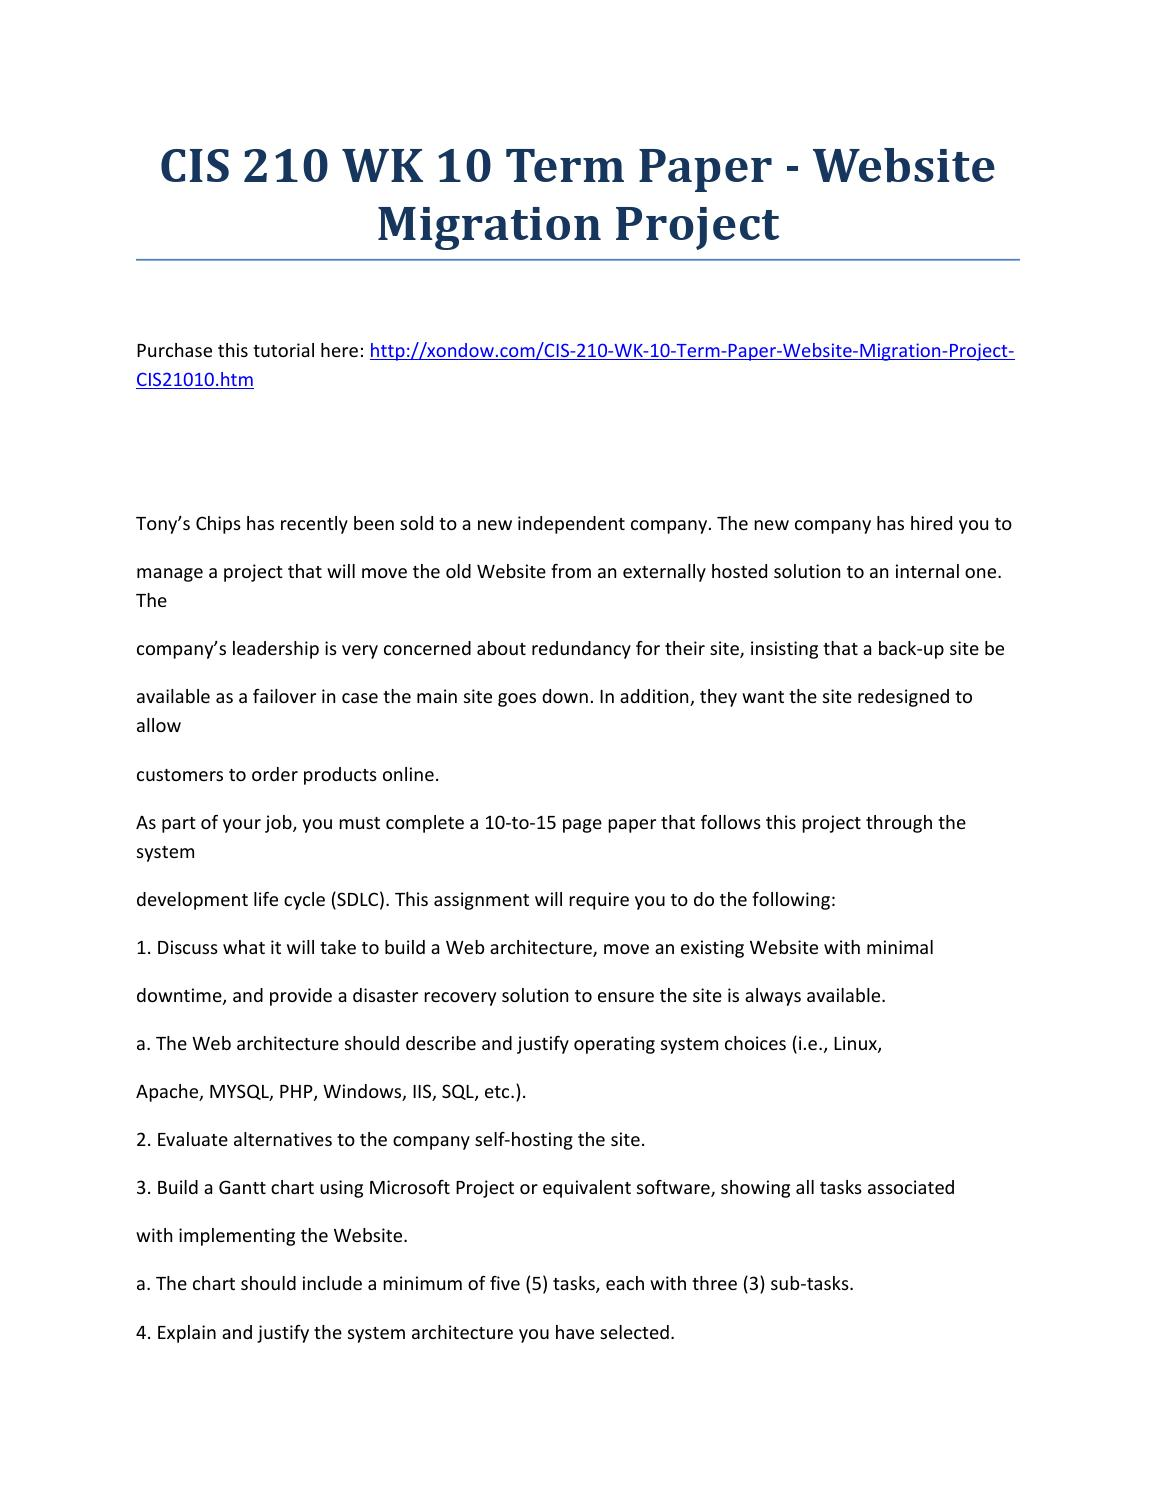 cis 210 systems analysis and development website Cis 210 week 10 term paper website migration project tony's chips has recently been sold to a new independent company the new company has hired you to manage a project that will move the old website from an externally hosted solution to an internal one.